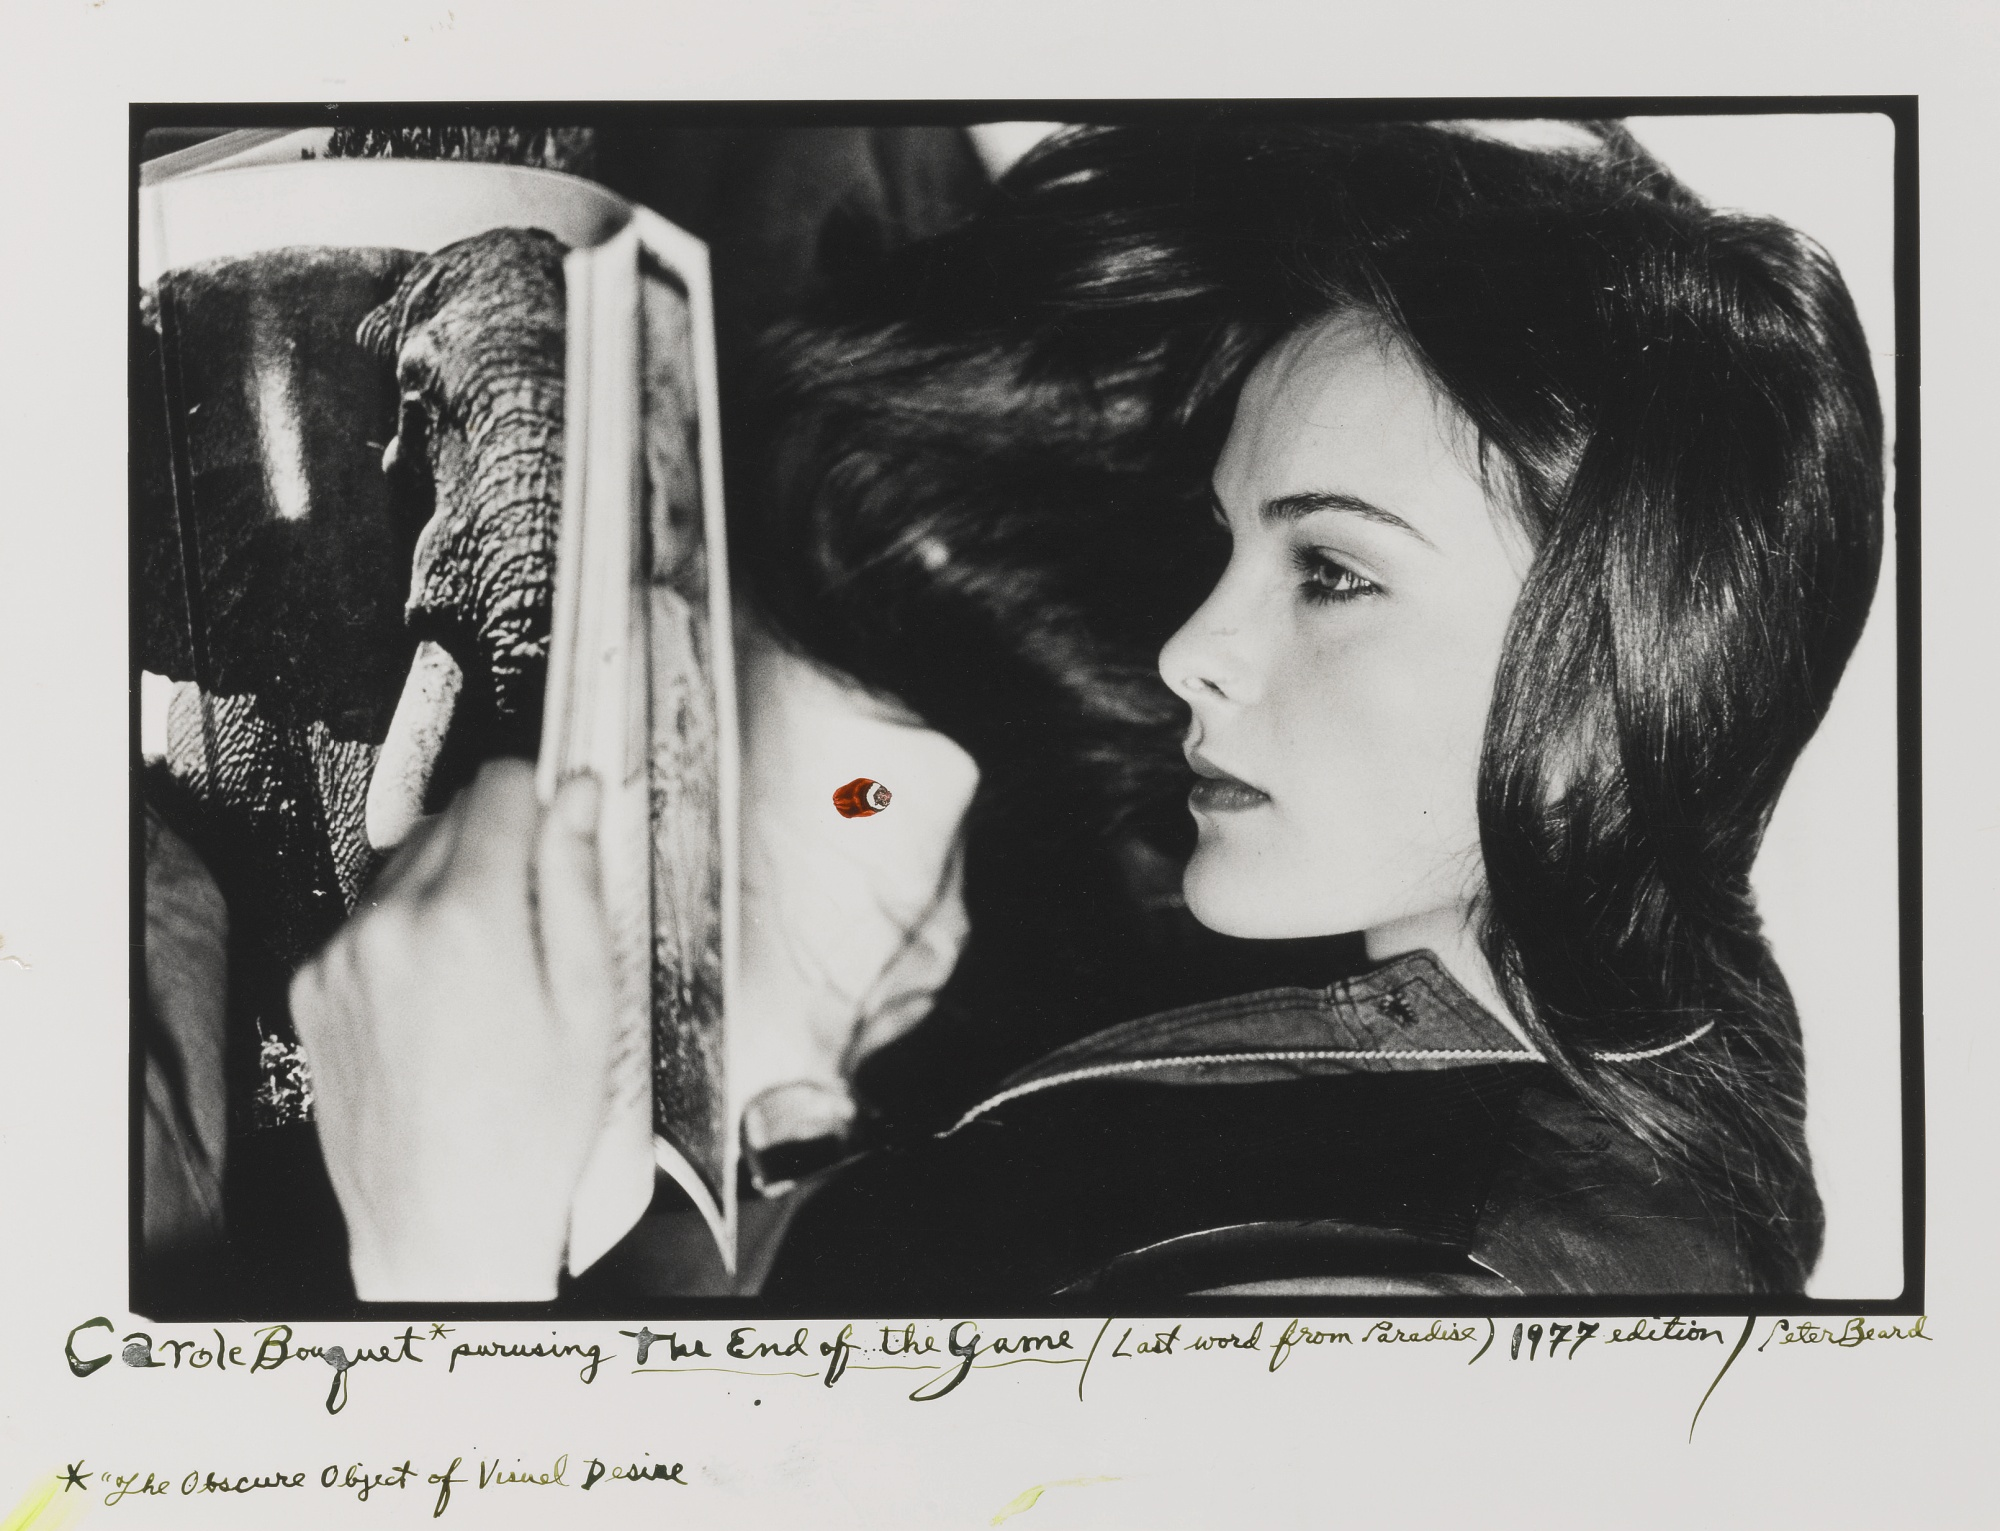 Peter Beard-Carole Bouquet Perusing The End Of The Game (Last Word From Paradise) 1977 Edition-1975